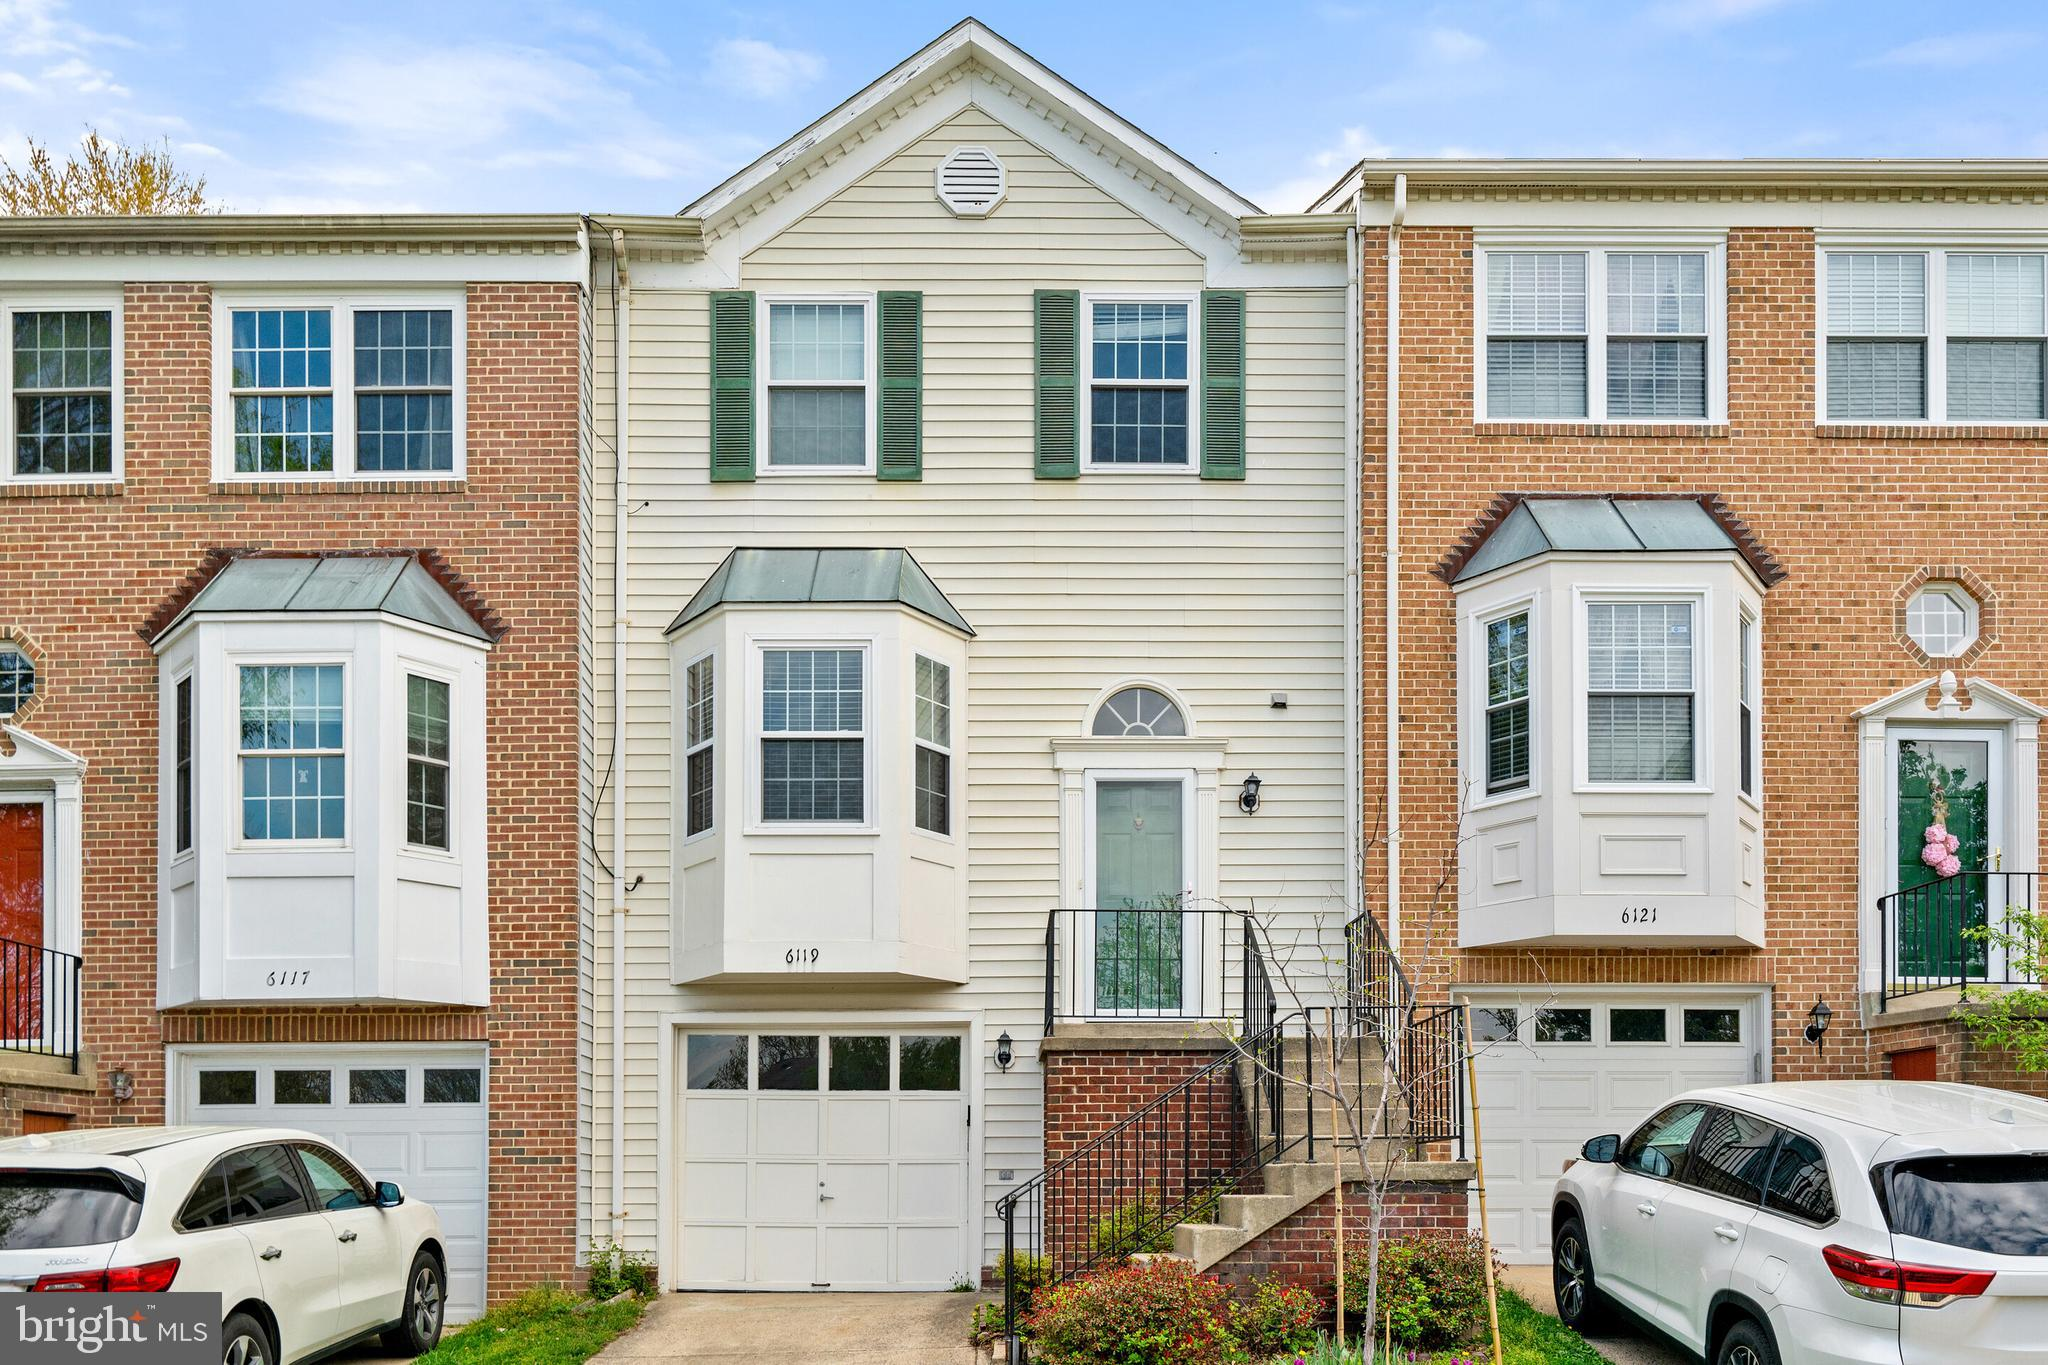 Centrally located in a very desirable community! Minutes to Union Mill Shopping Center, movie theate